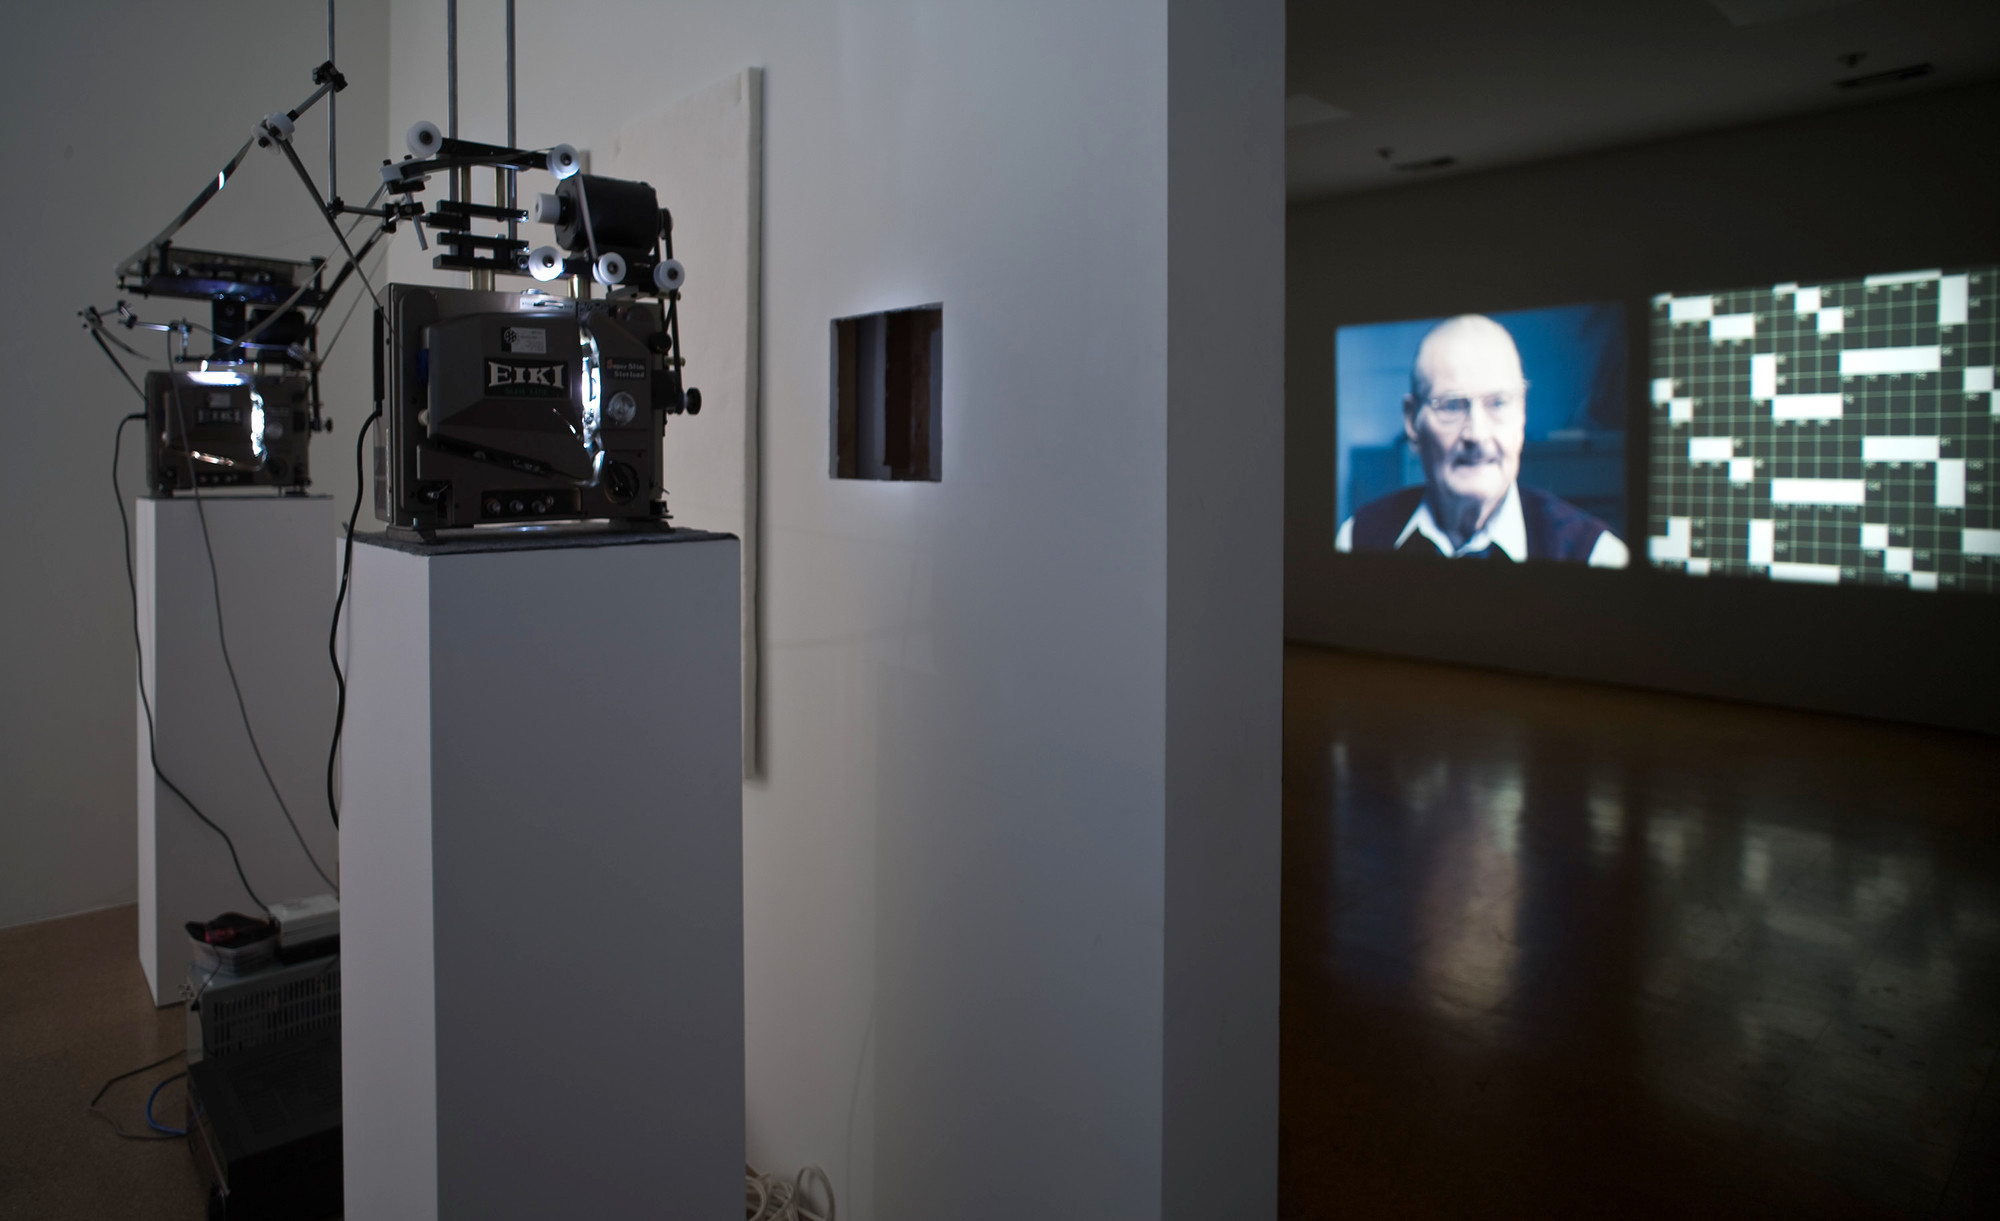 Kerry Tribe. H.M. 2009. Double projection of a single 16mm film (color, sound). 18:30 min. Fund for the Twenty-First Century. © 2013 Kerry Tribe. Installation view, 1301 PE, Los Angeles. Photo: Fredrik Nilson